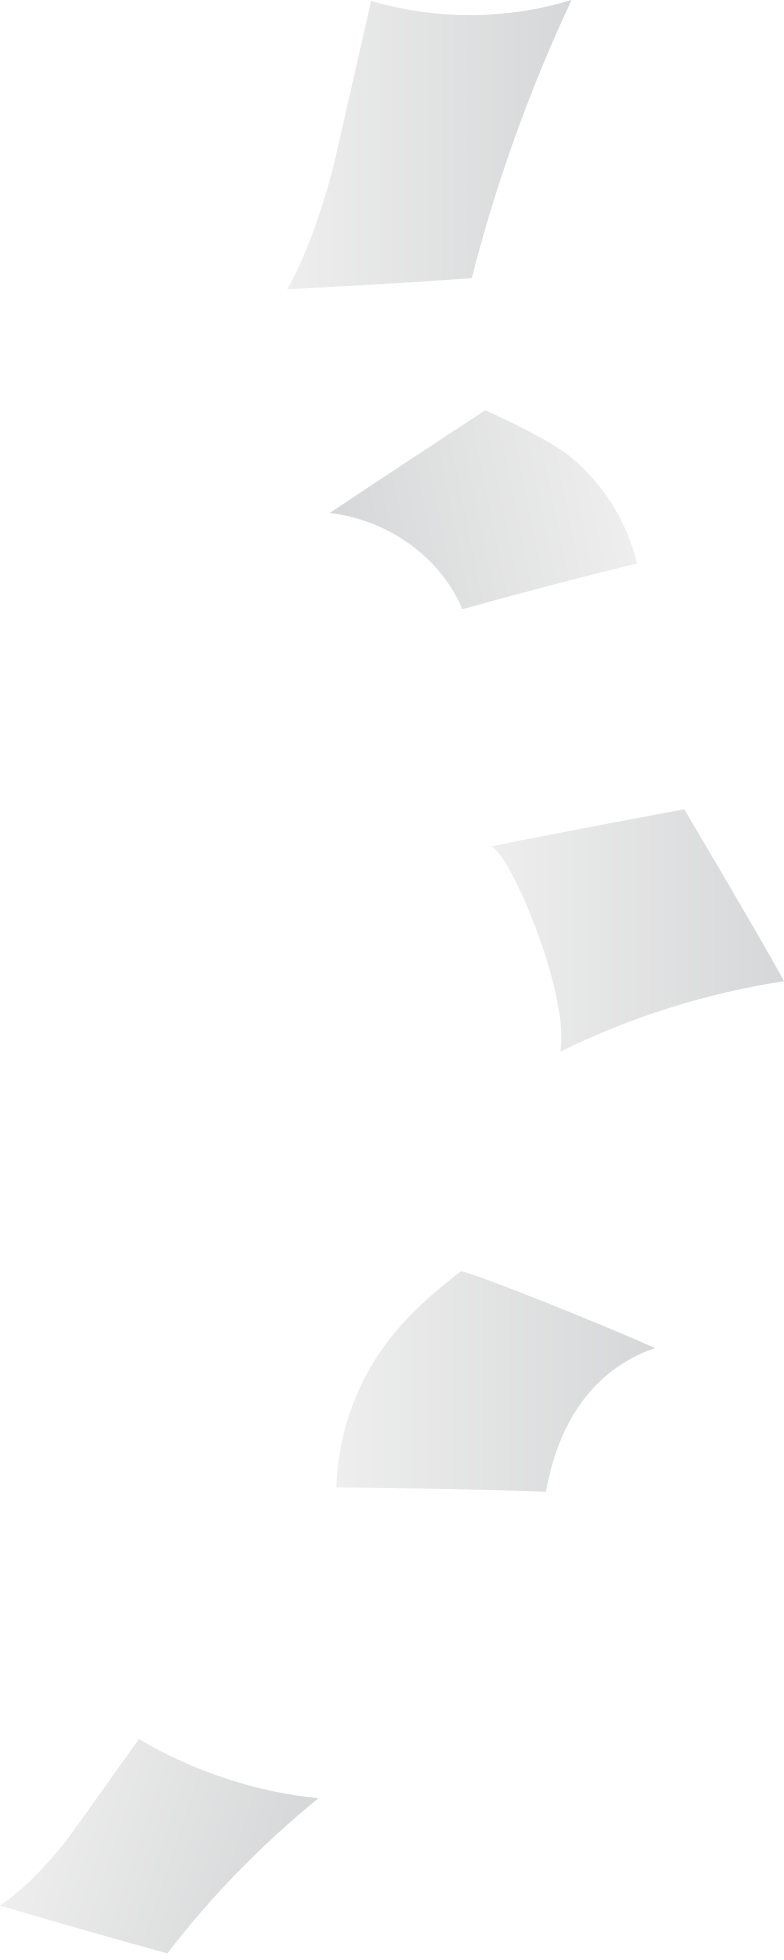 papers Clipart illustration in PNG, SVG